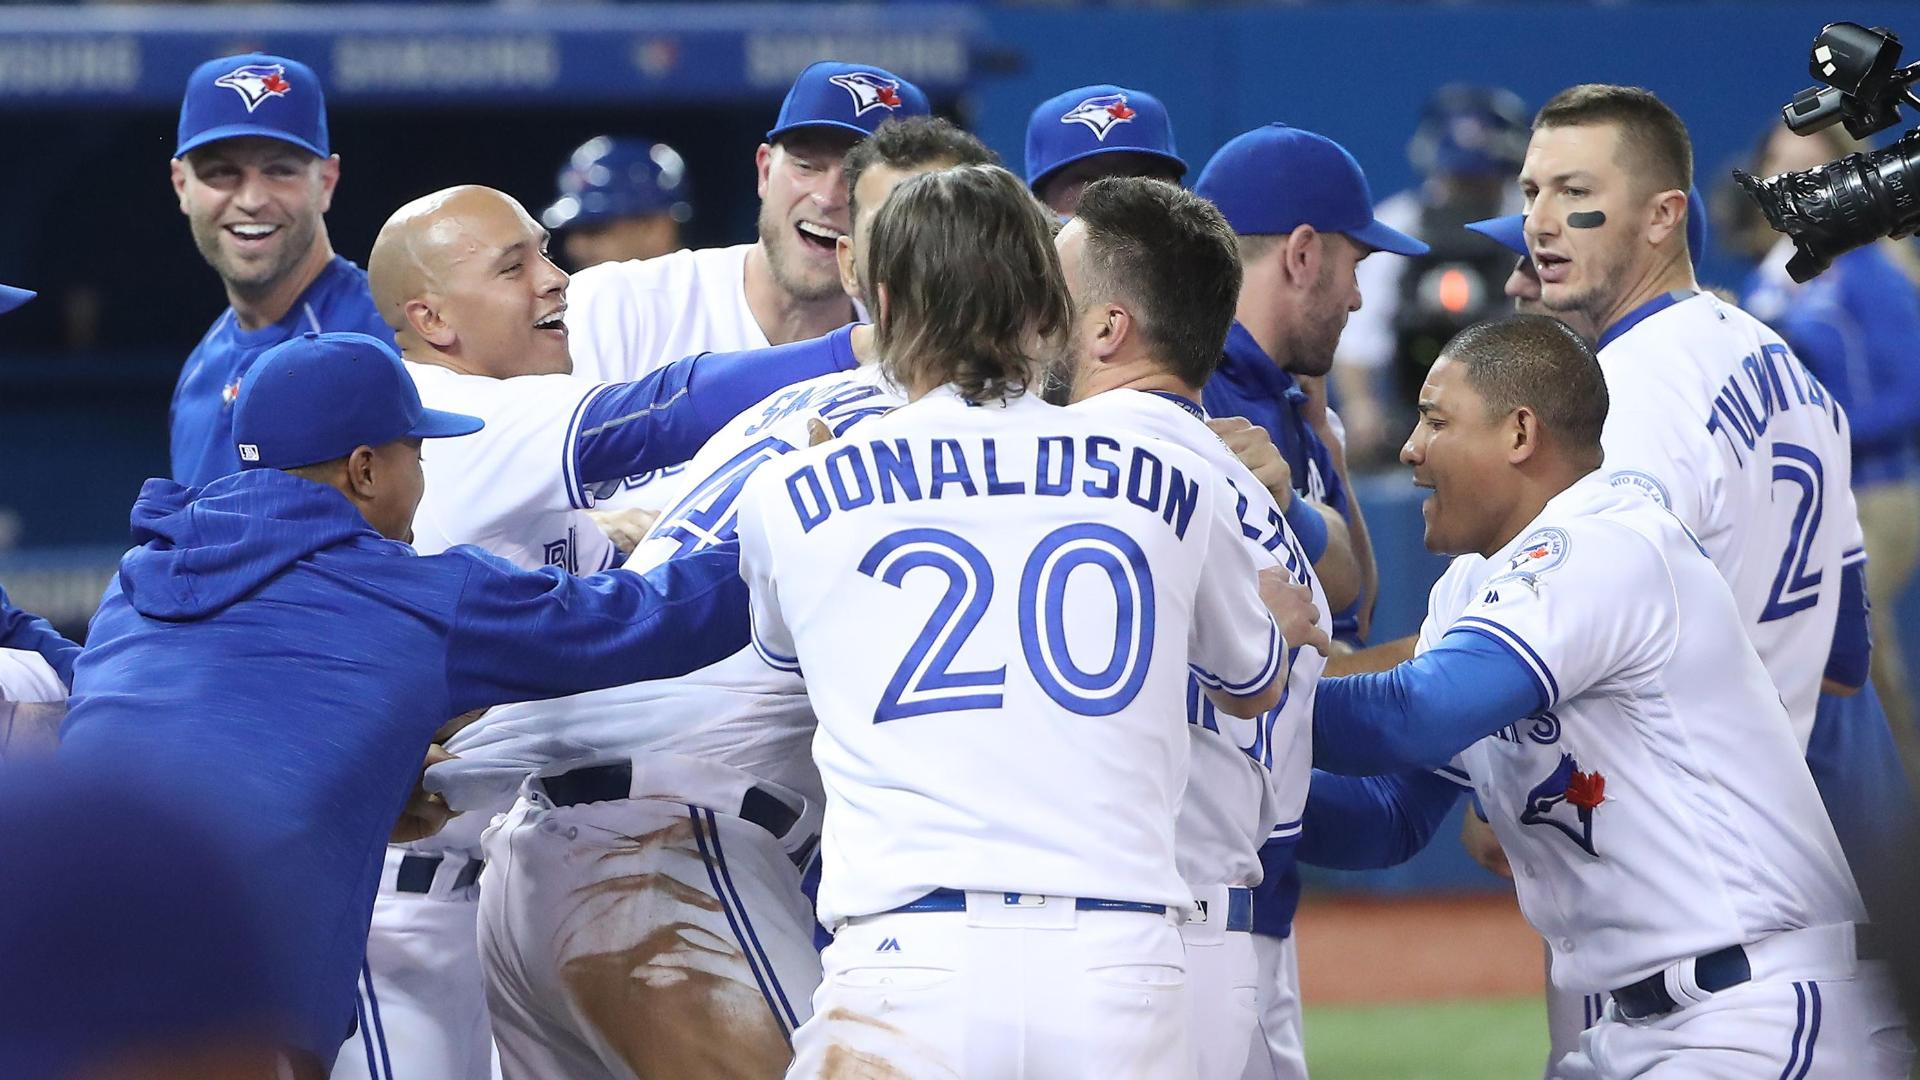 Smoak's big blasts tie and win game for Blue Jays